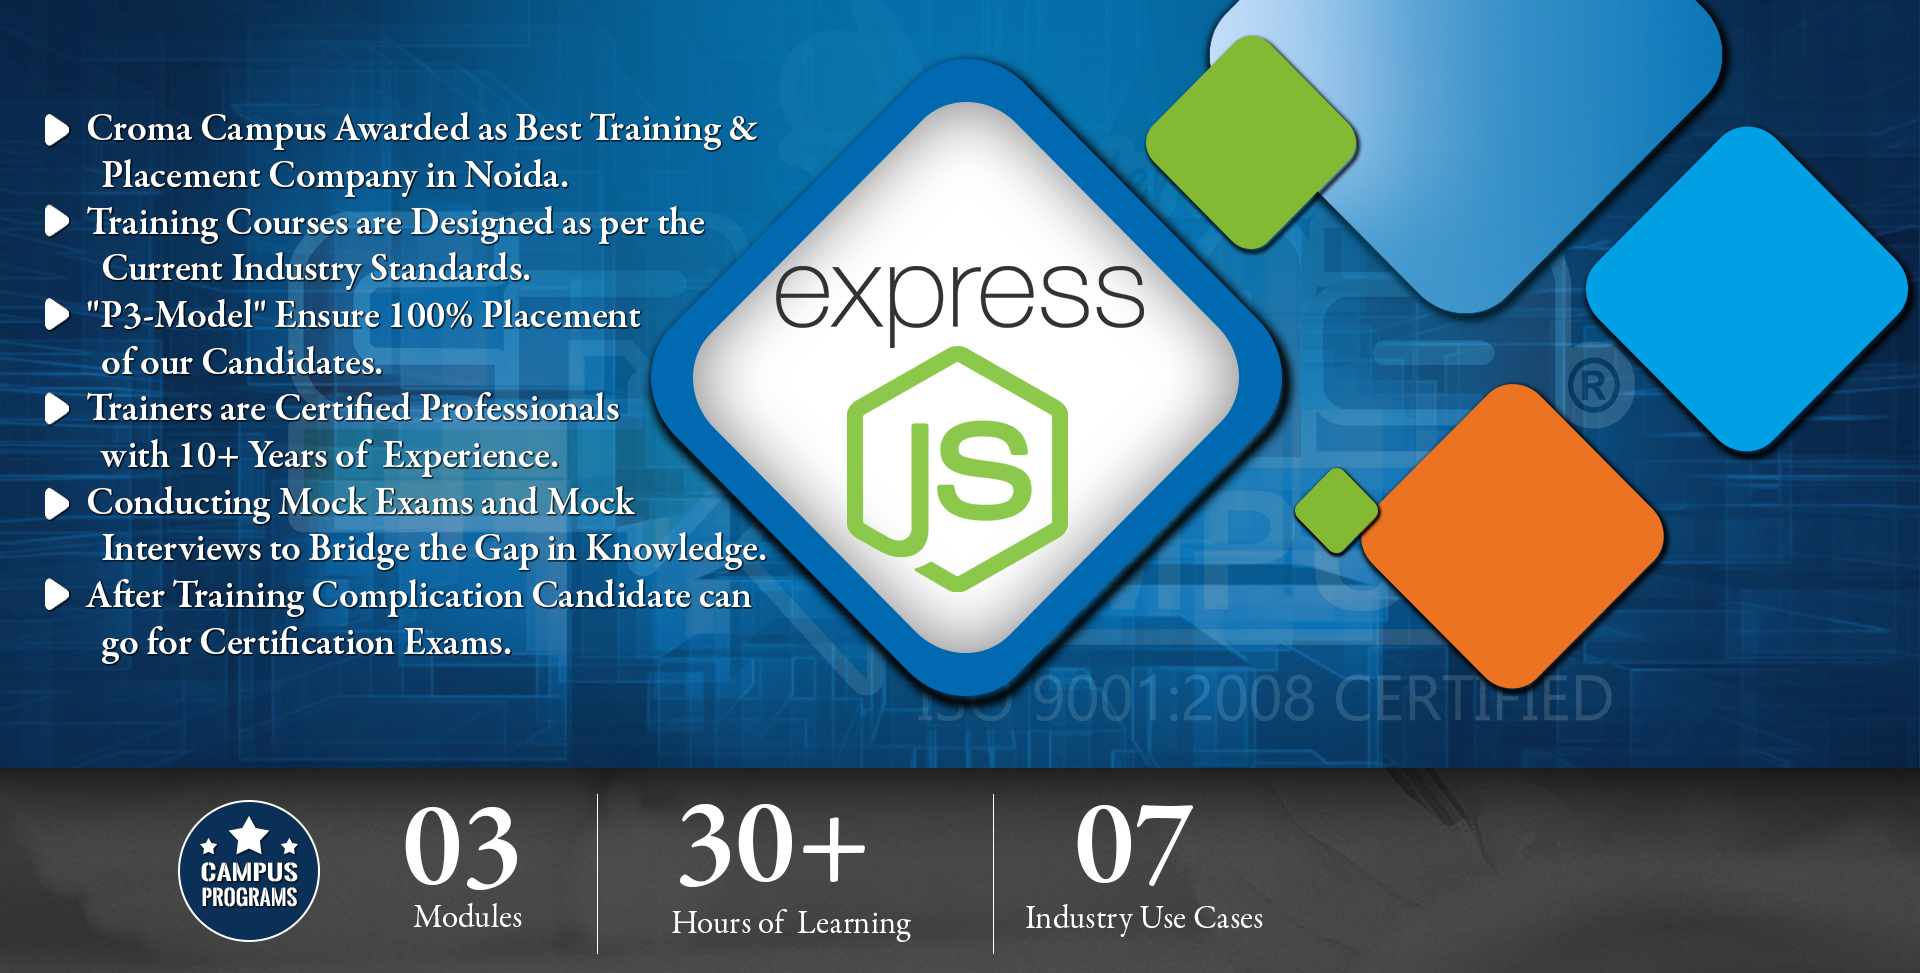 ExpressJS Training in Delhi